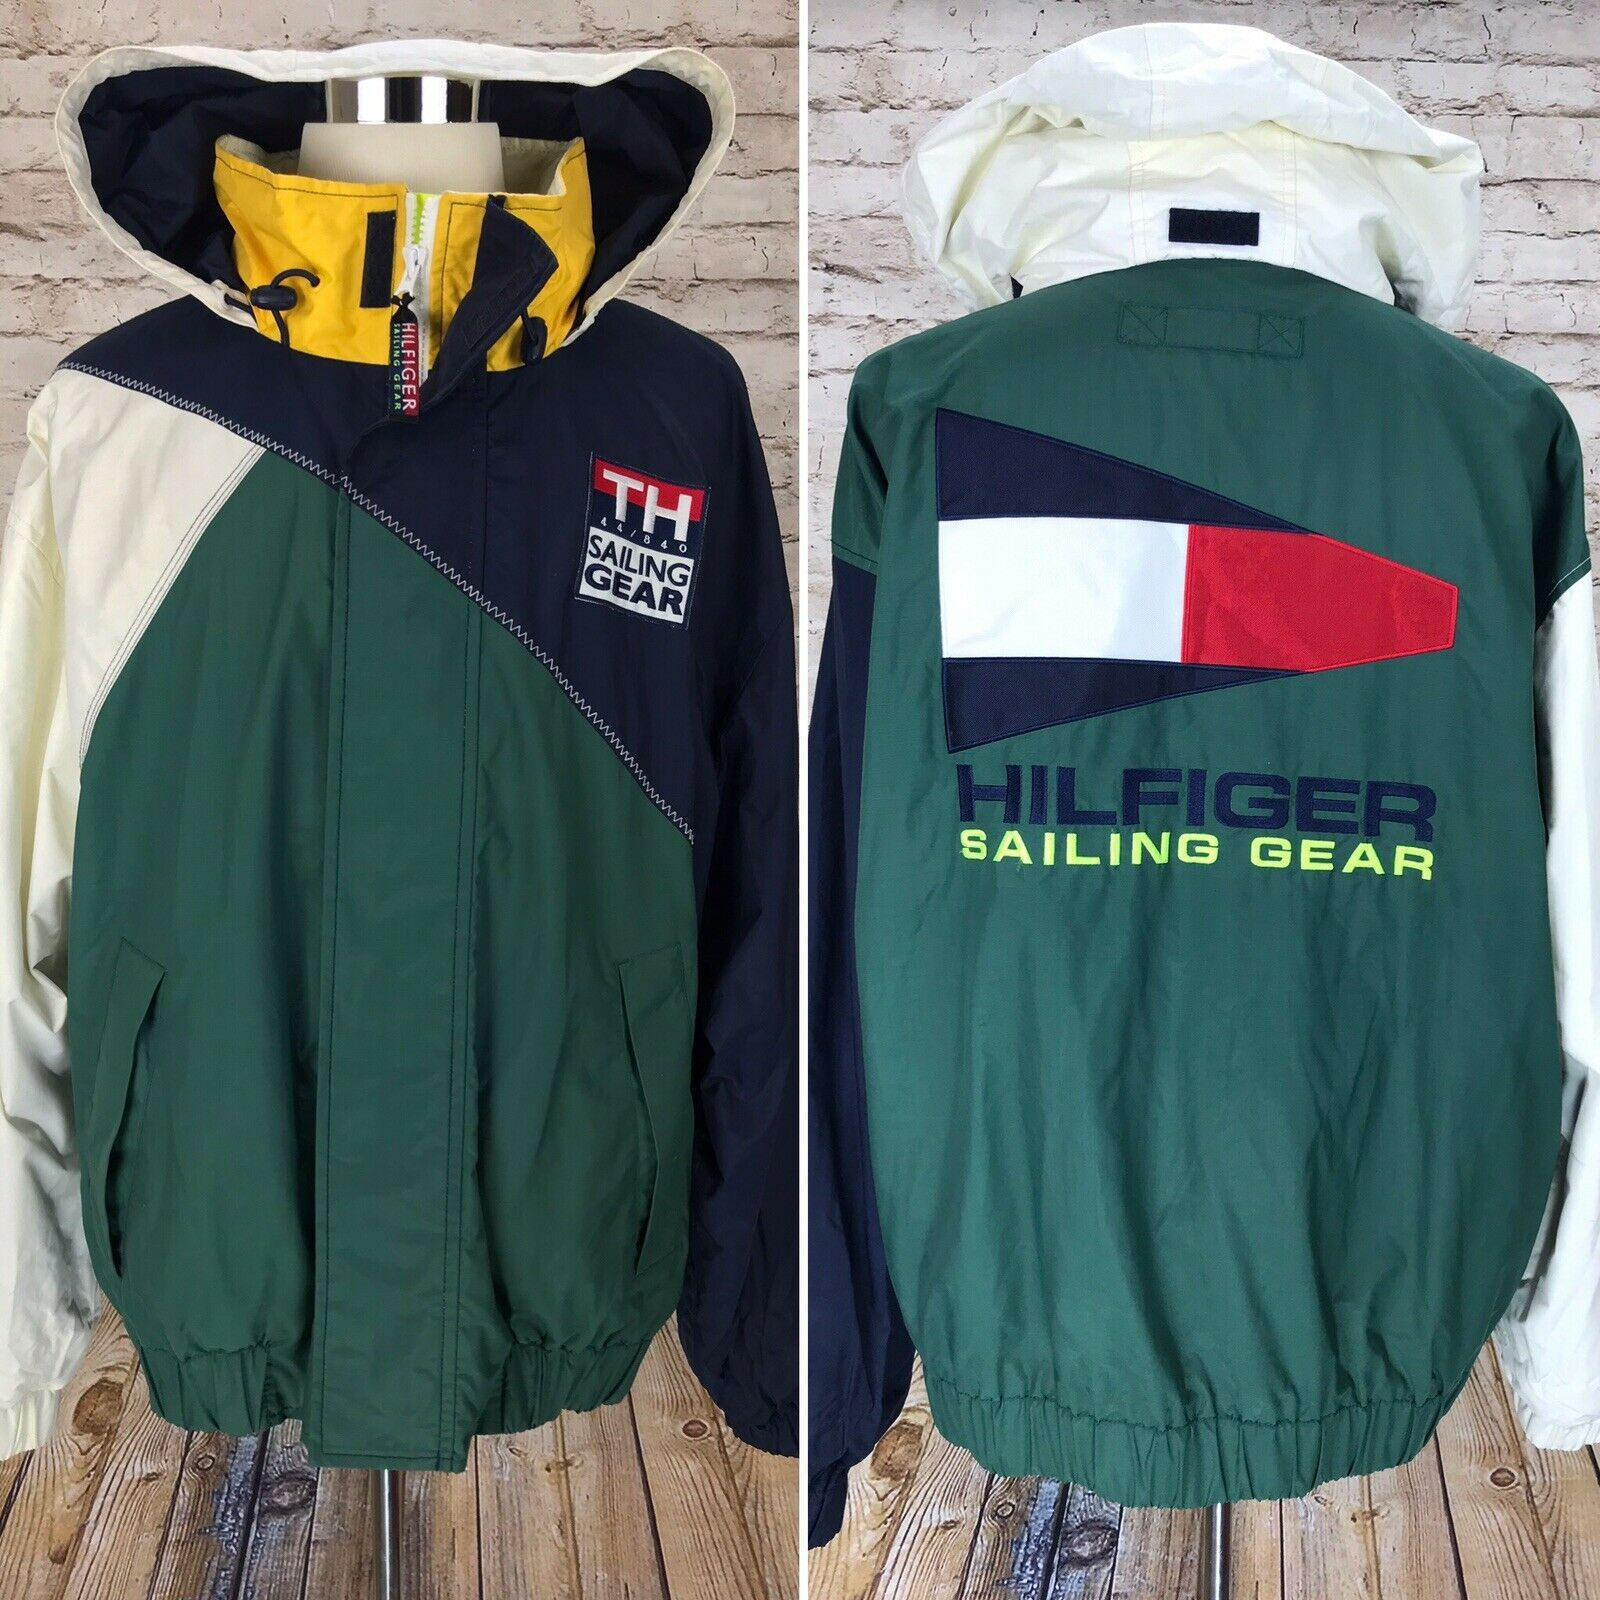 VTG Tommy Hilfiger XXL Sailing Gear Nautical Embroidered